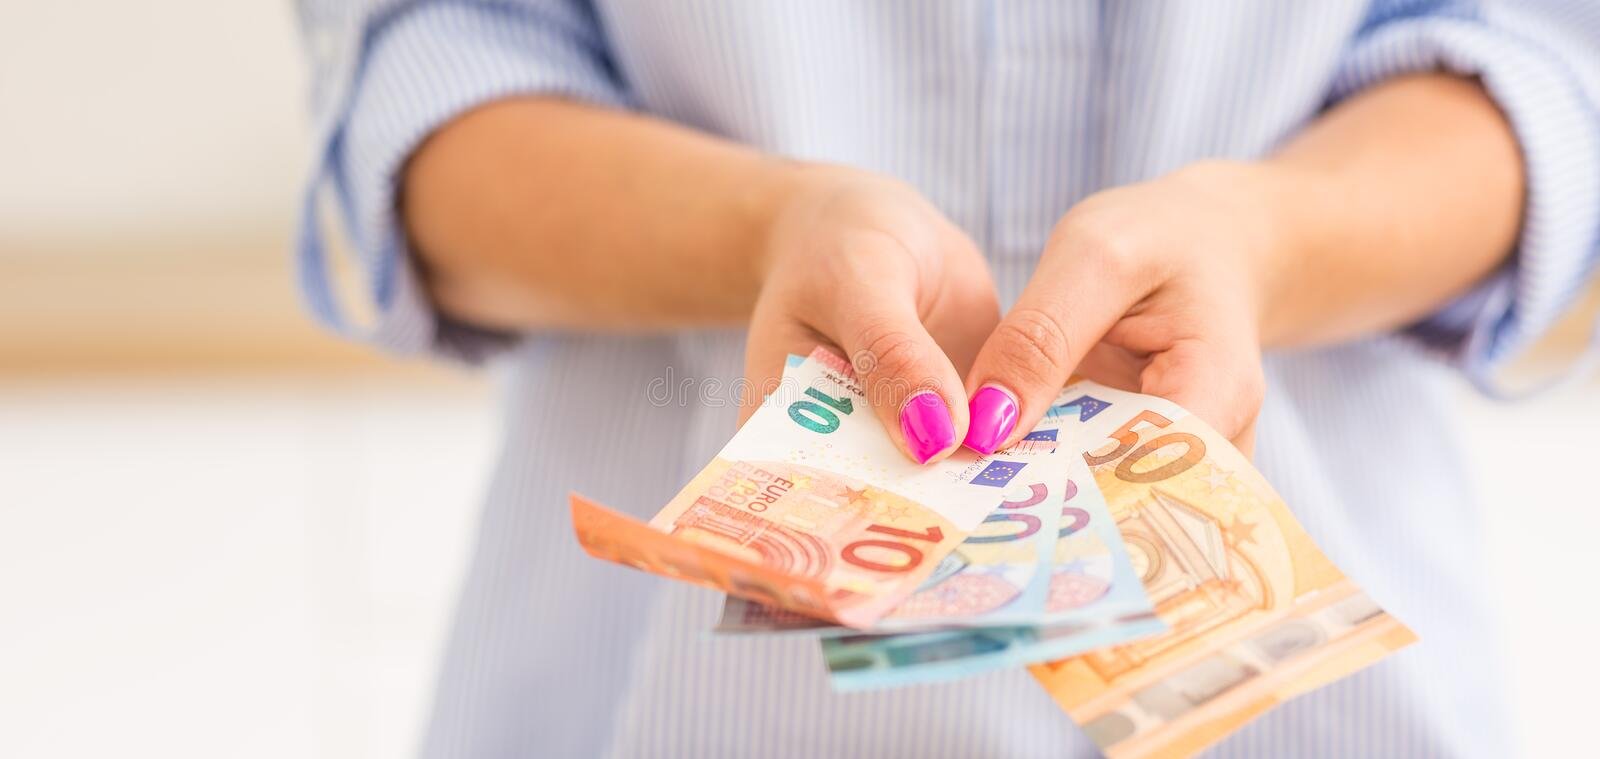 Hands of young woman holding euro banknotes royalty free stock photo